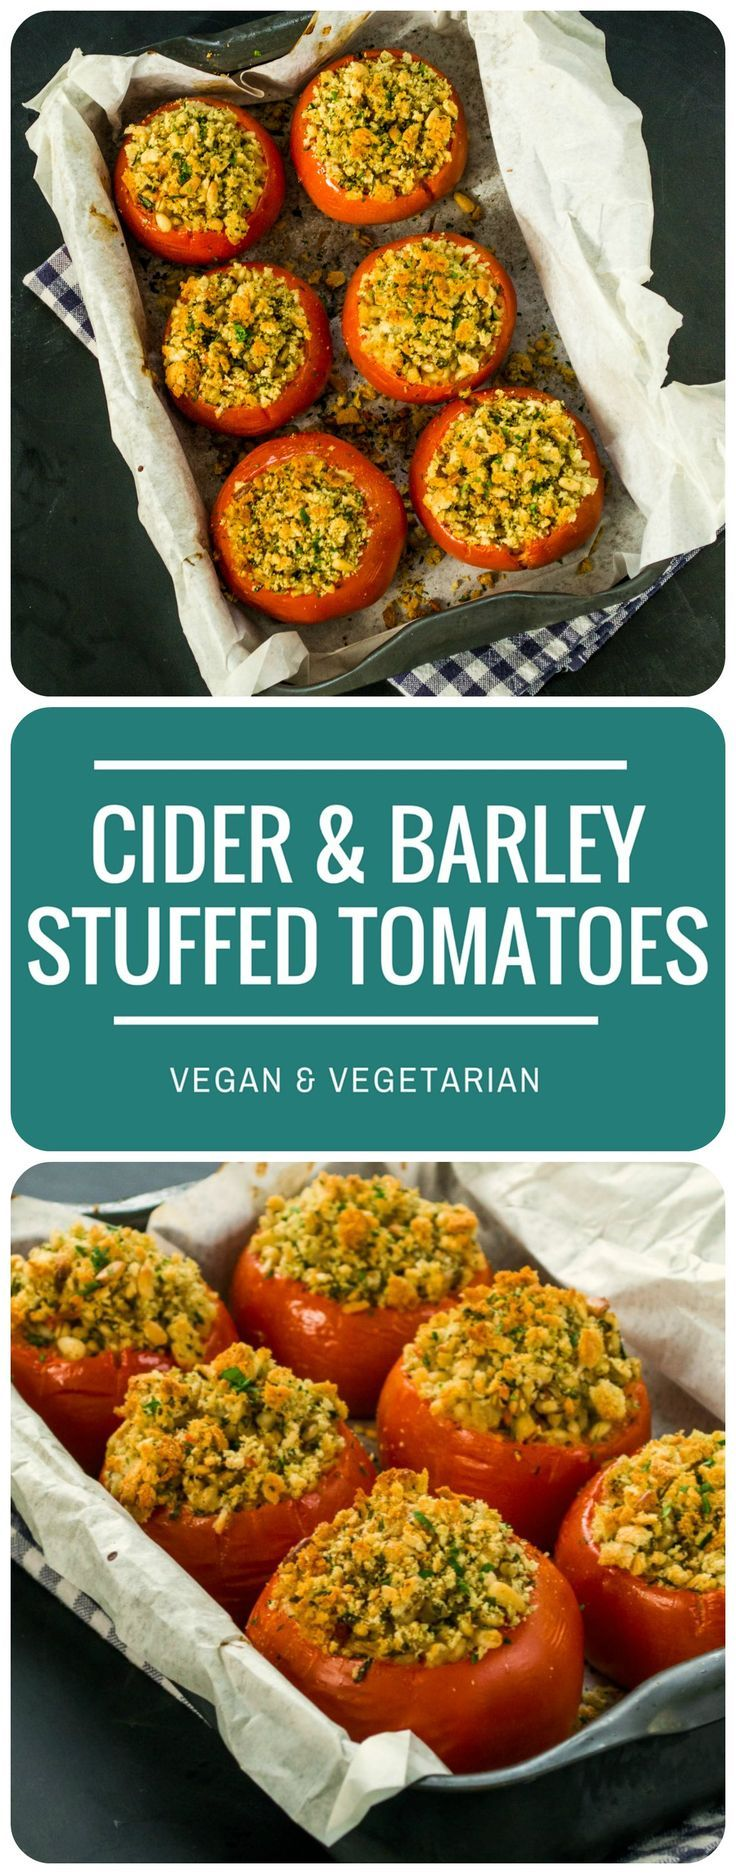 Cider & Barley Stuffed Tomatoes - huge beef tomatoes with a filling of plump pearl barley cooked in dry cider, with a crunchy parsley and pine nut crust.  Would make a lovely vegan or vegetarian option for Sunday lunch or roast dinner!